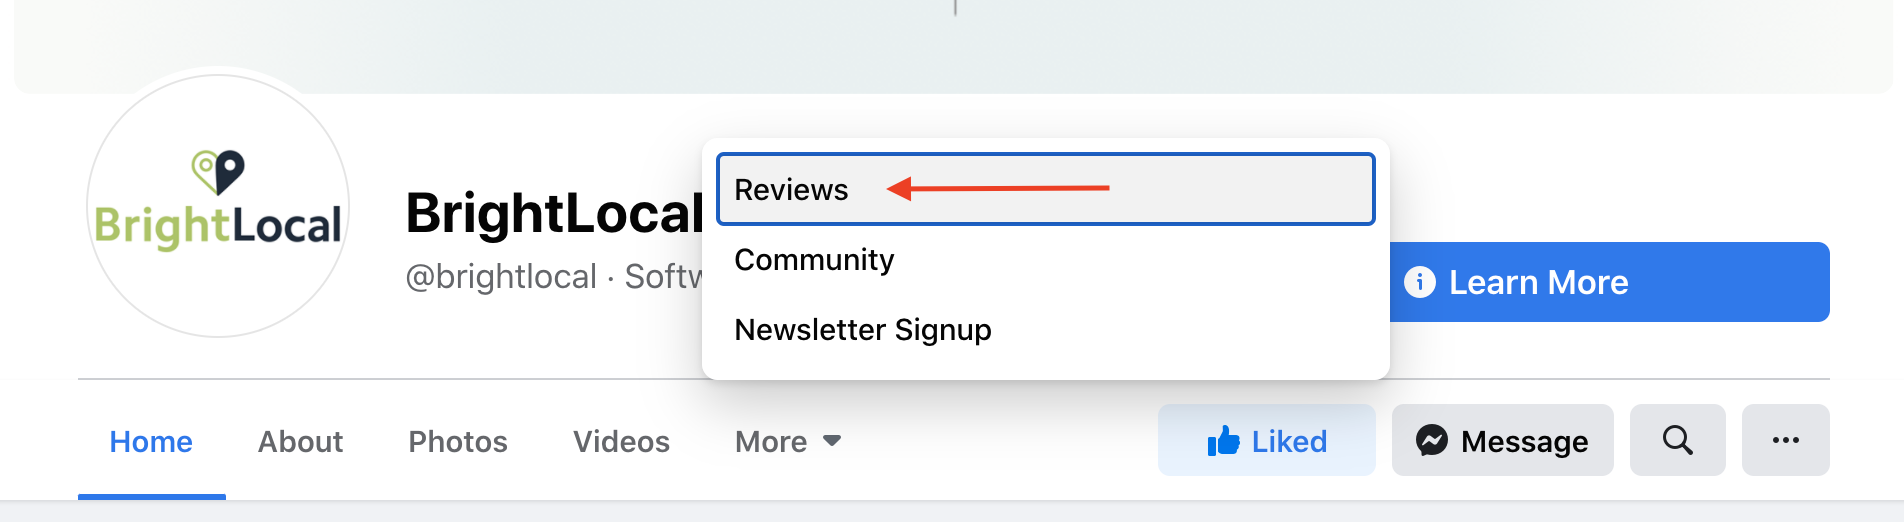 New Facebook reviews layout